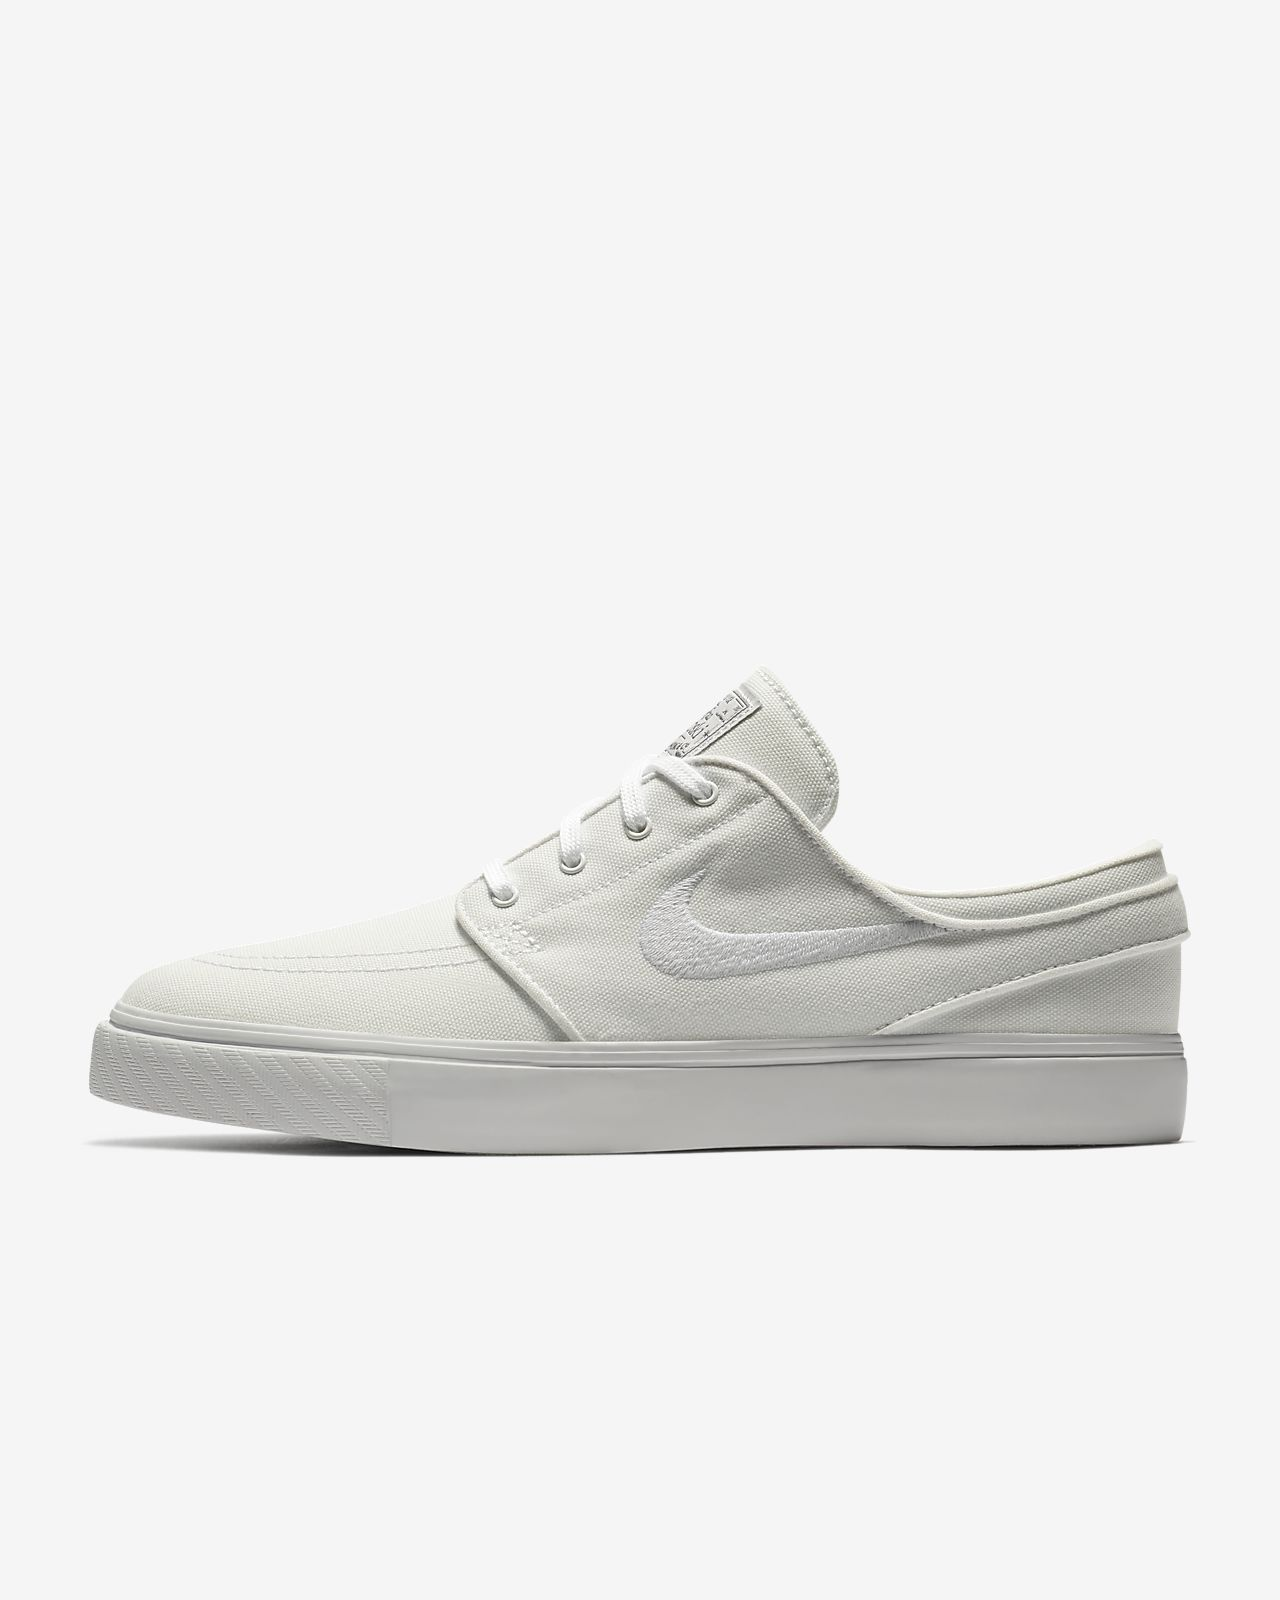 the latest f8eaf 10701 Men s Skate Shoe. Nike SB Zoom Stefan Janoski Canvas